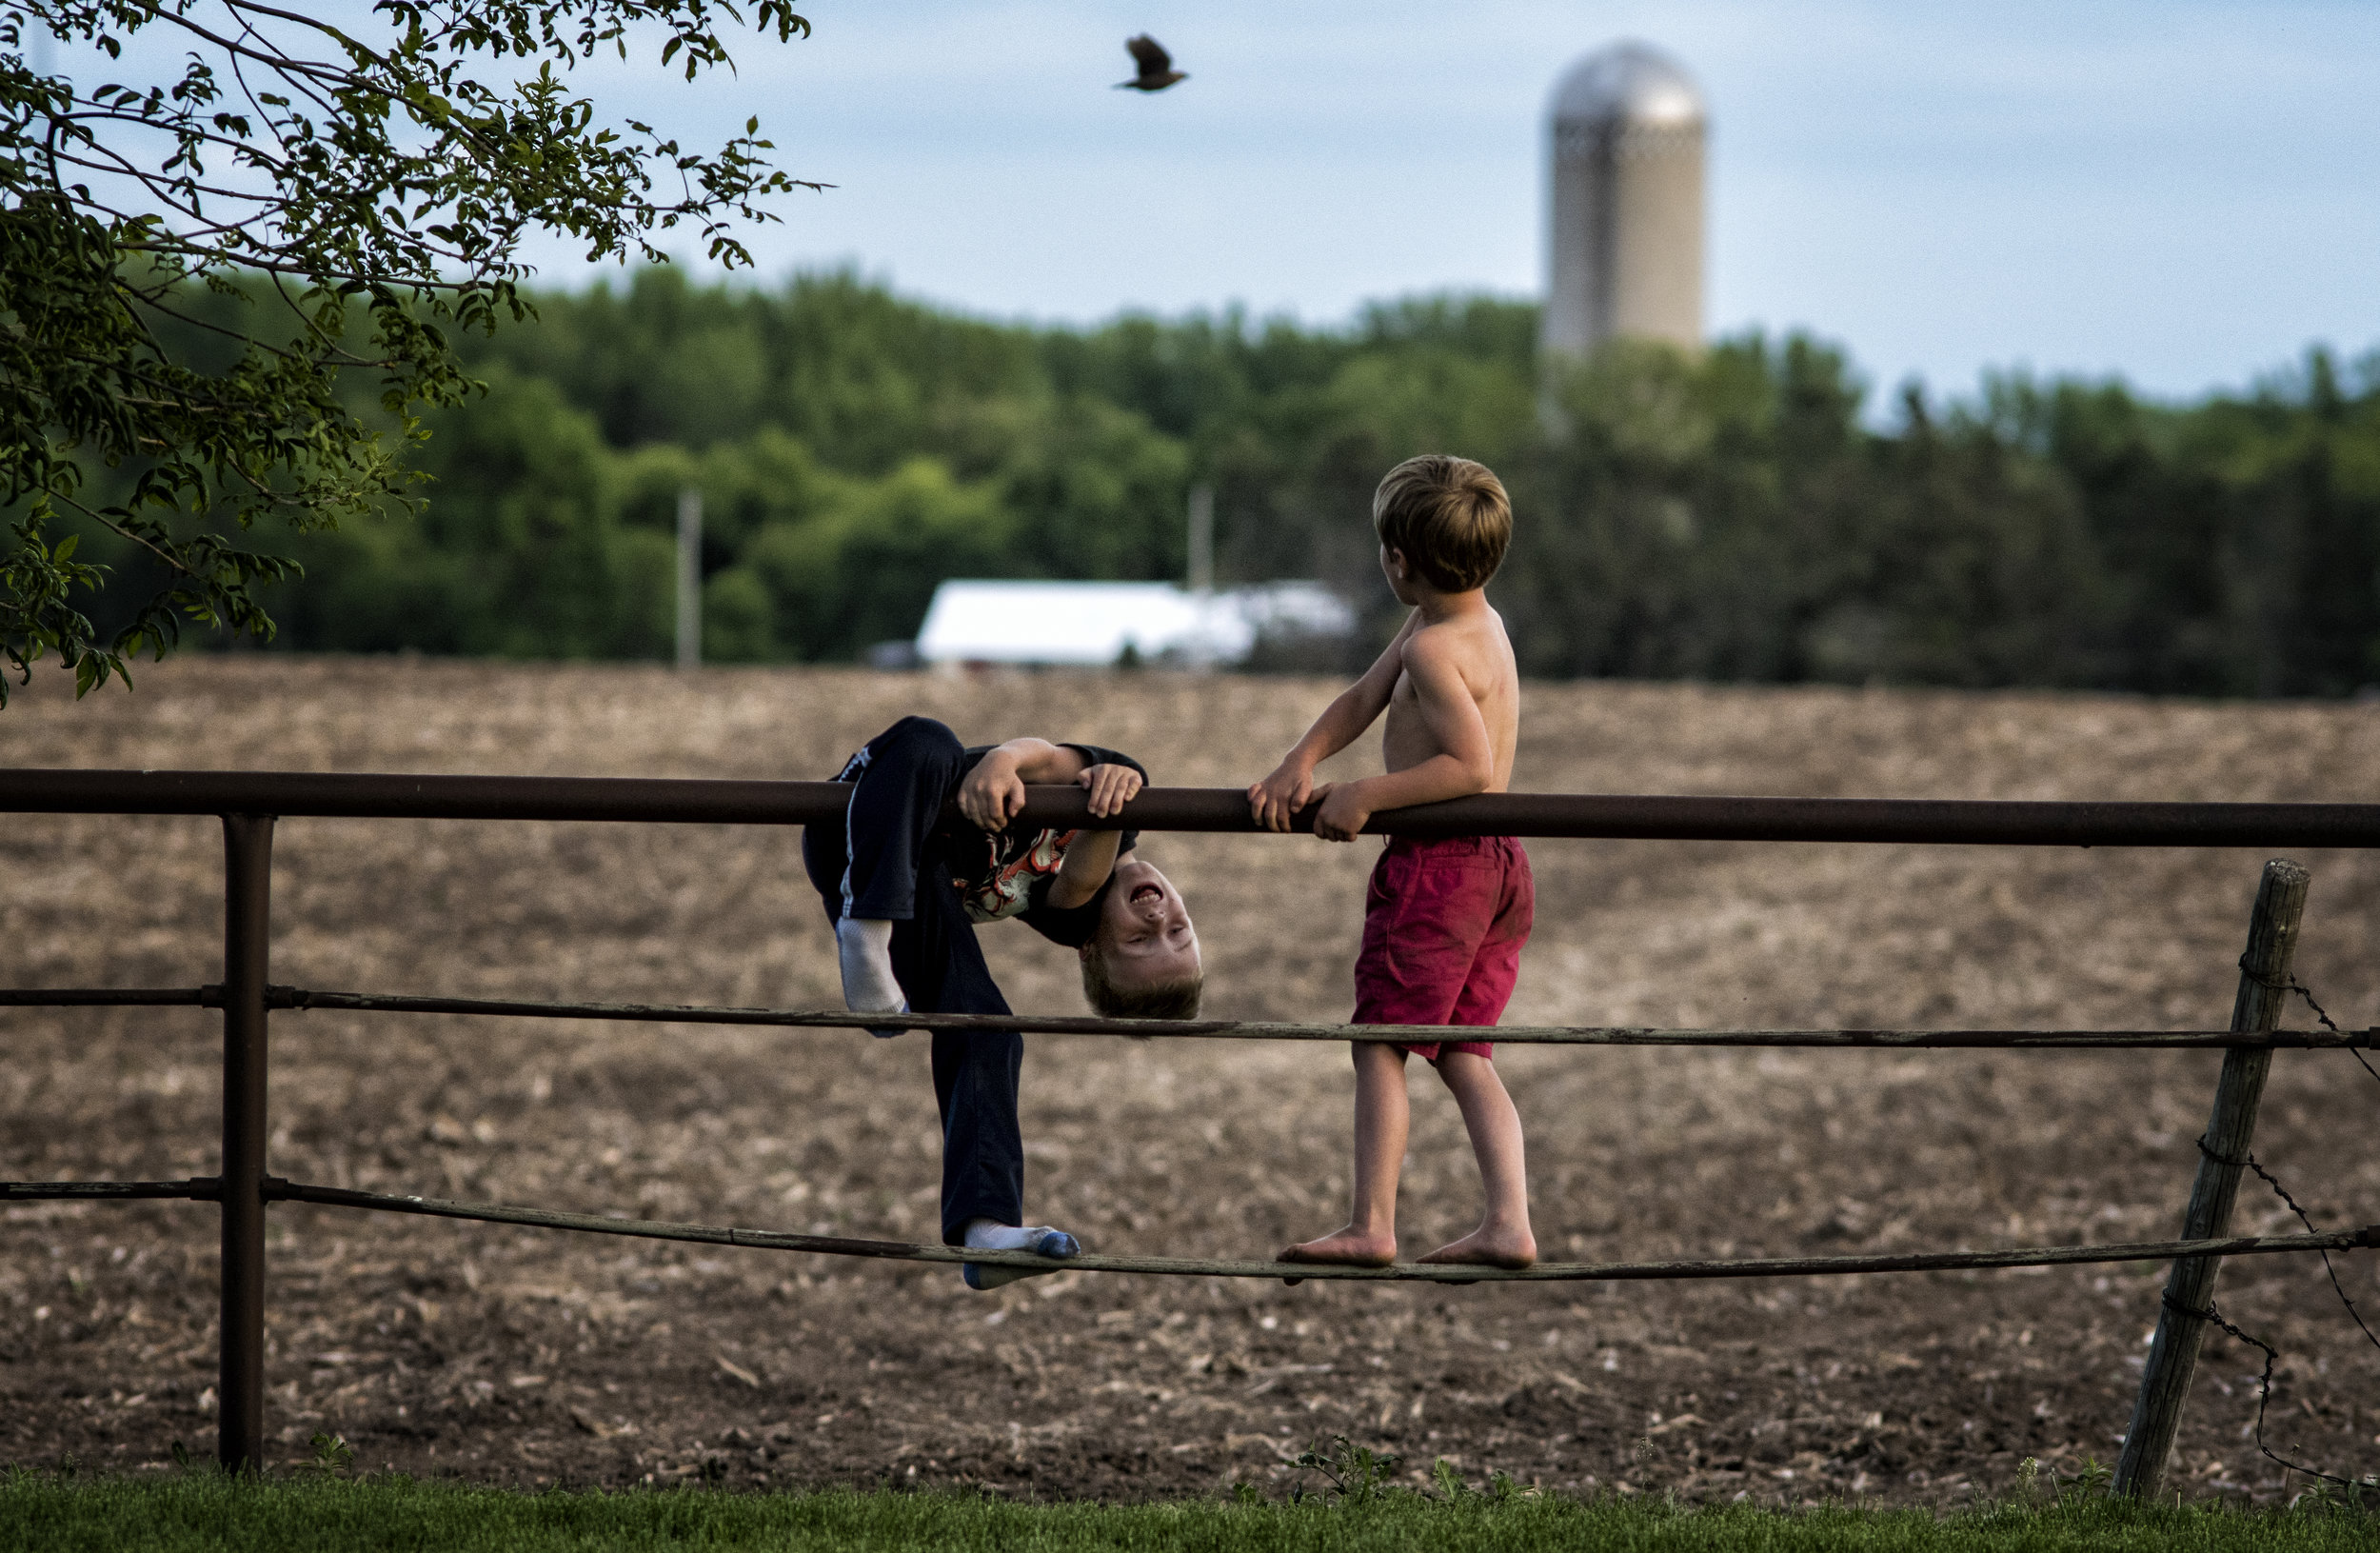 Cousins Alvie Bearinger (left) and Hank Johnsen (right) climb a fence at their Great Uncle Tom's house, overlooking the Kester homestead.